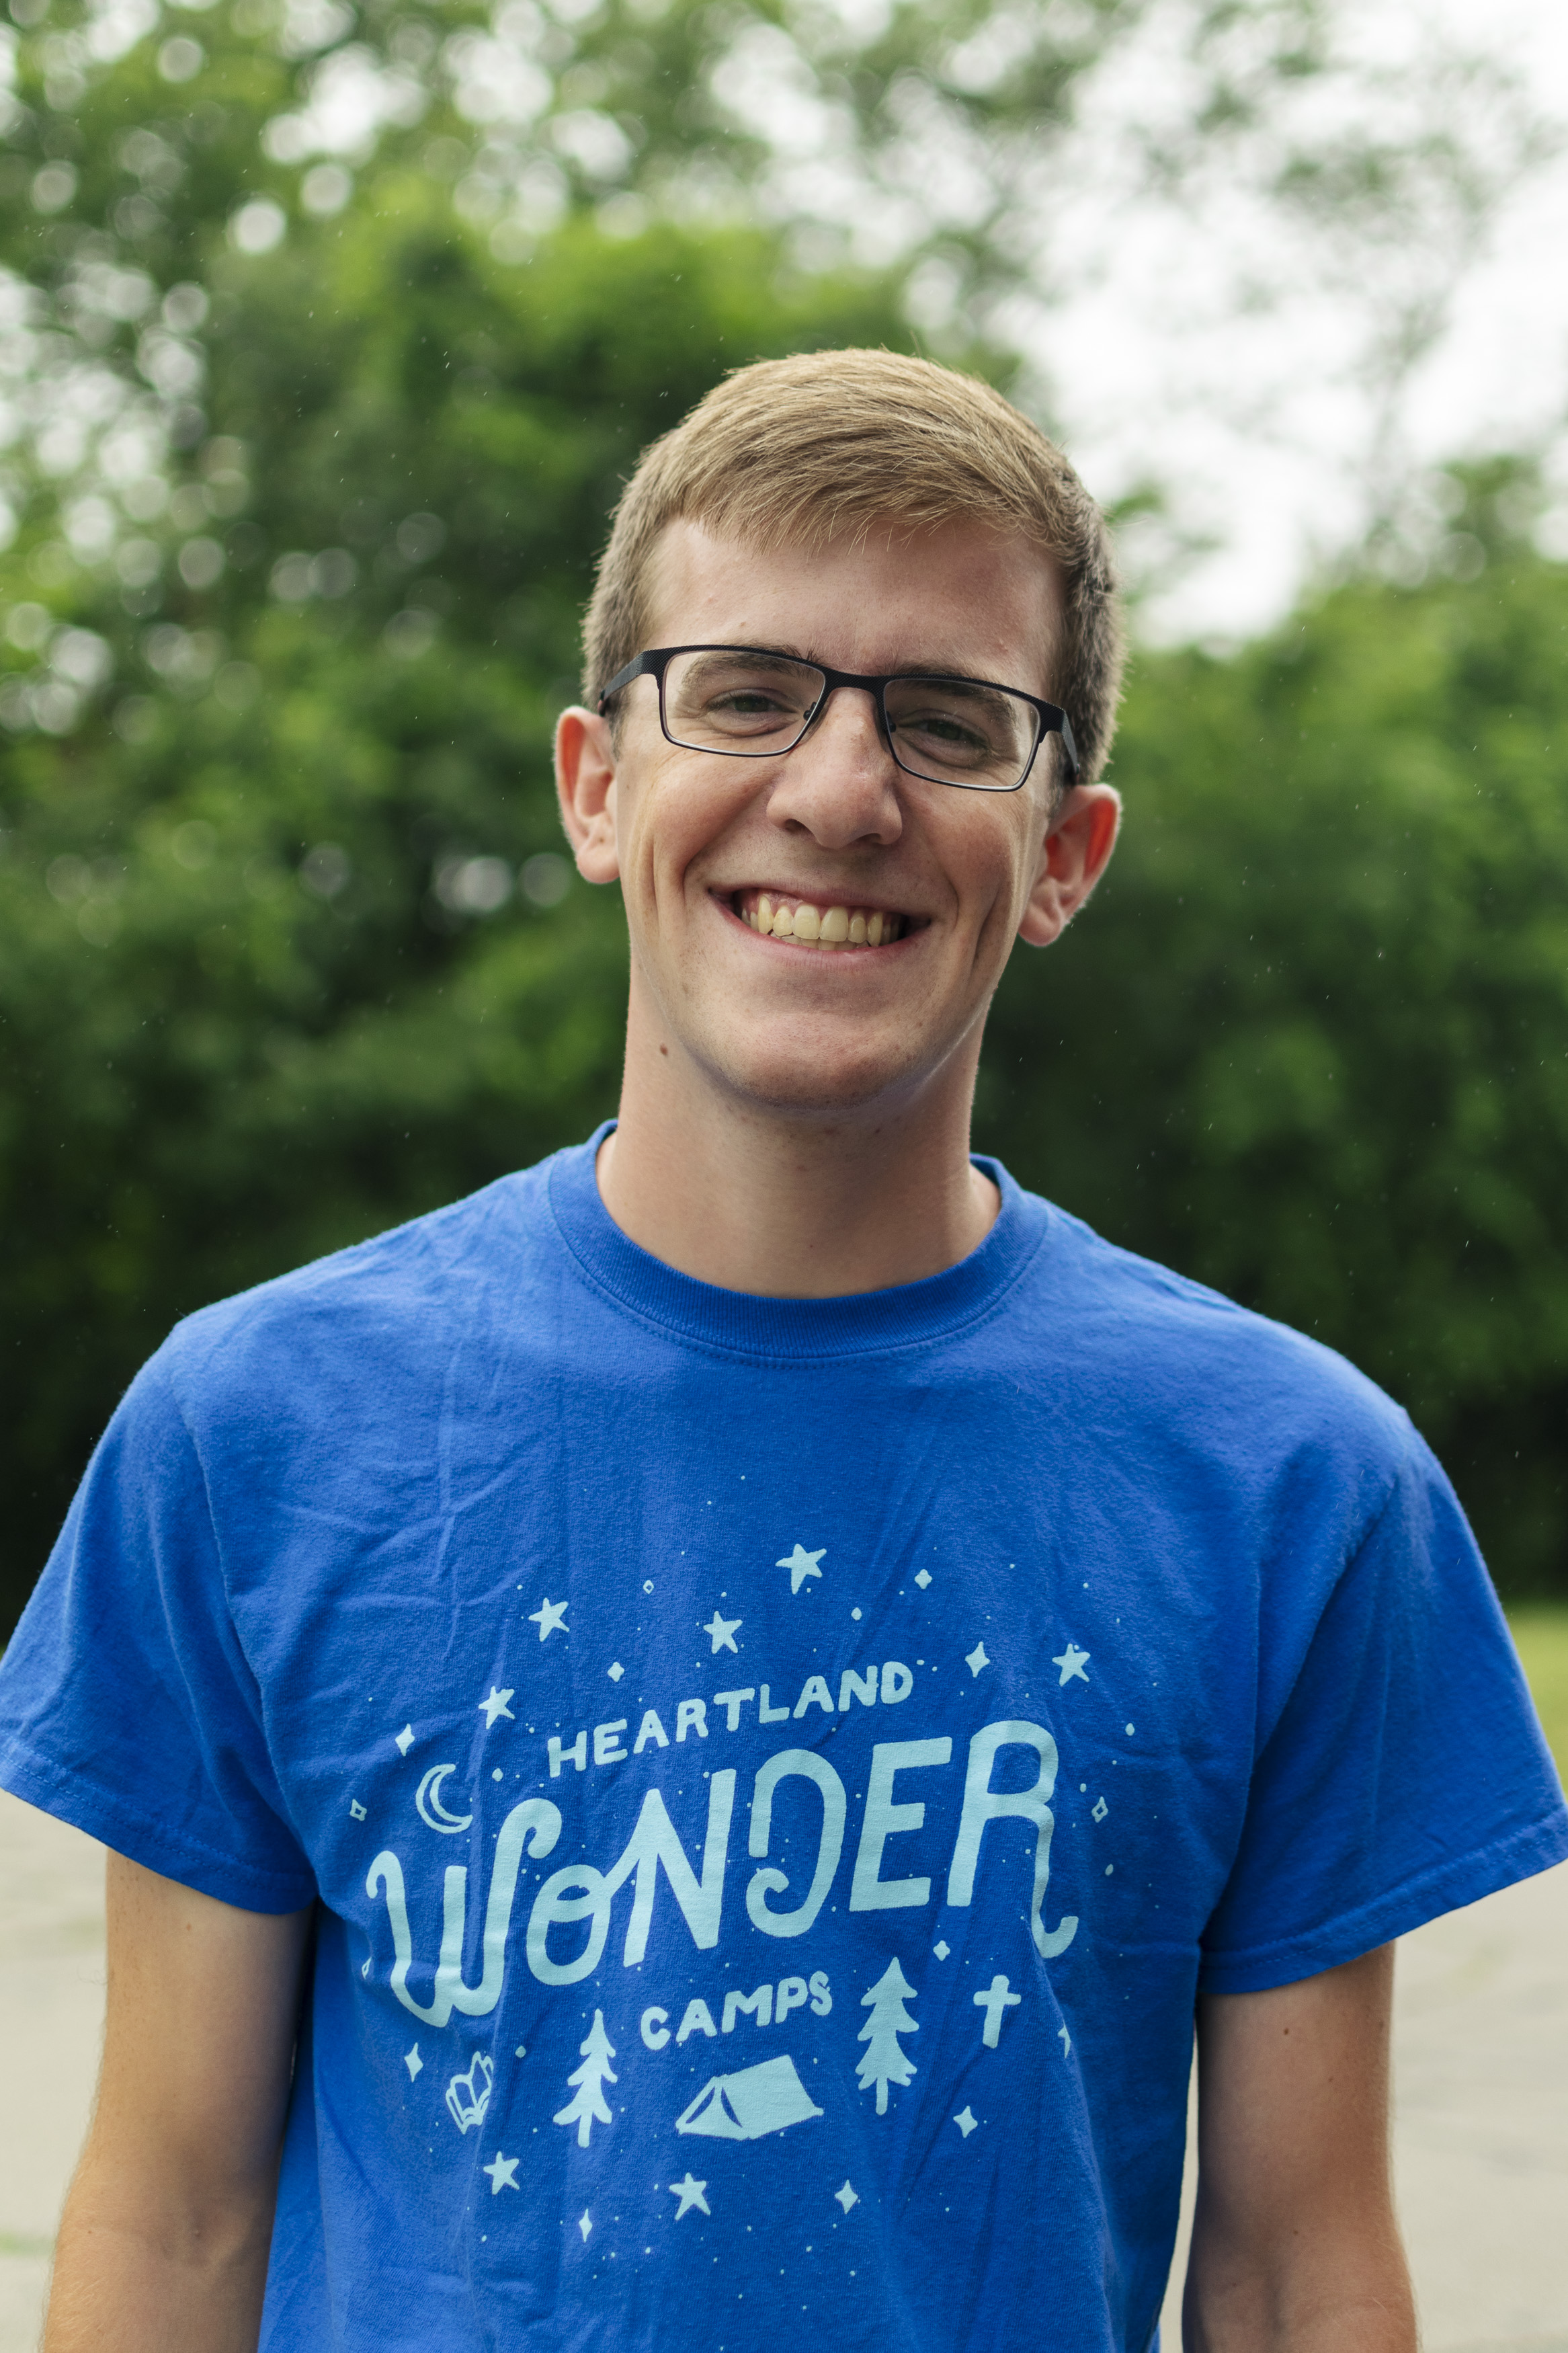 Brian Walker is a student at Truman State University. His favorite Bible passage is the story of Jesus feeding the 5,000, because God uses ordinary people to enact the extraordinary.